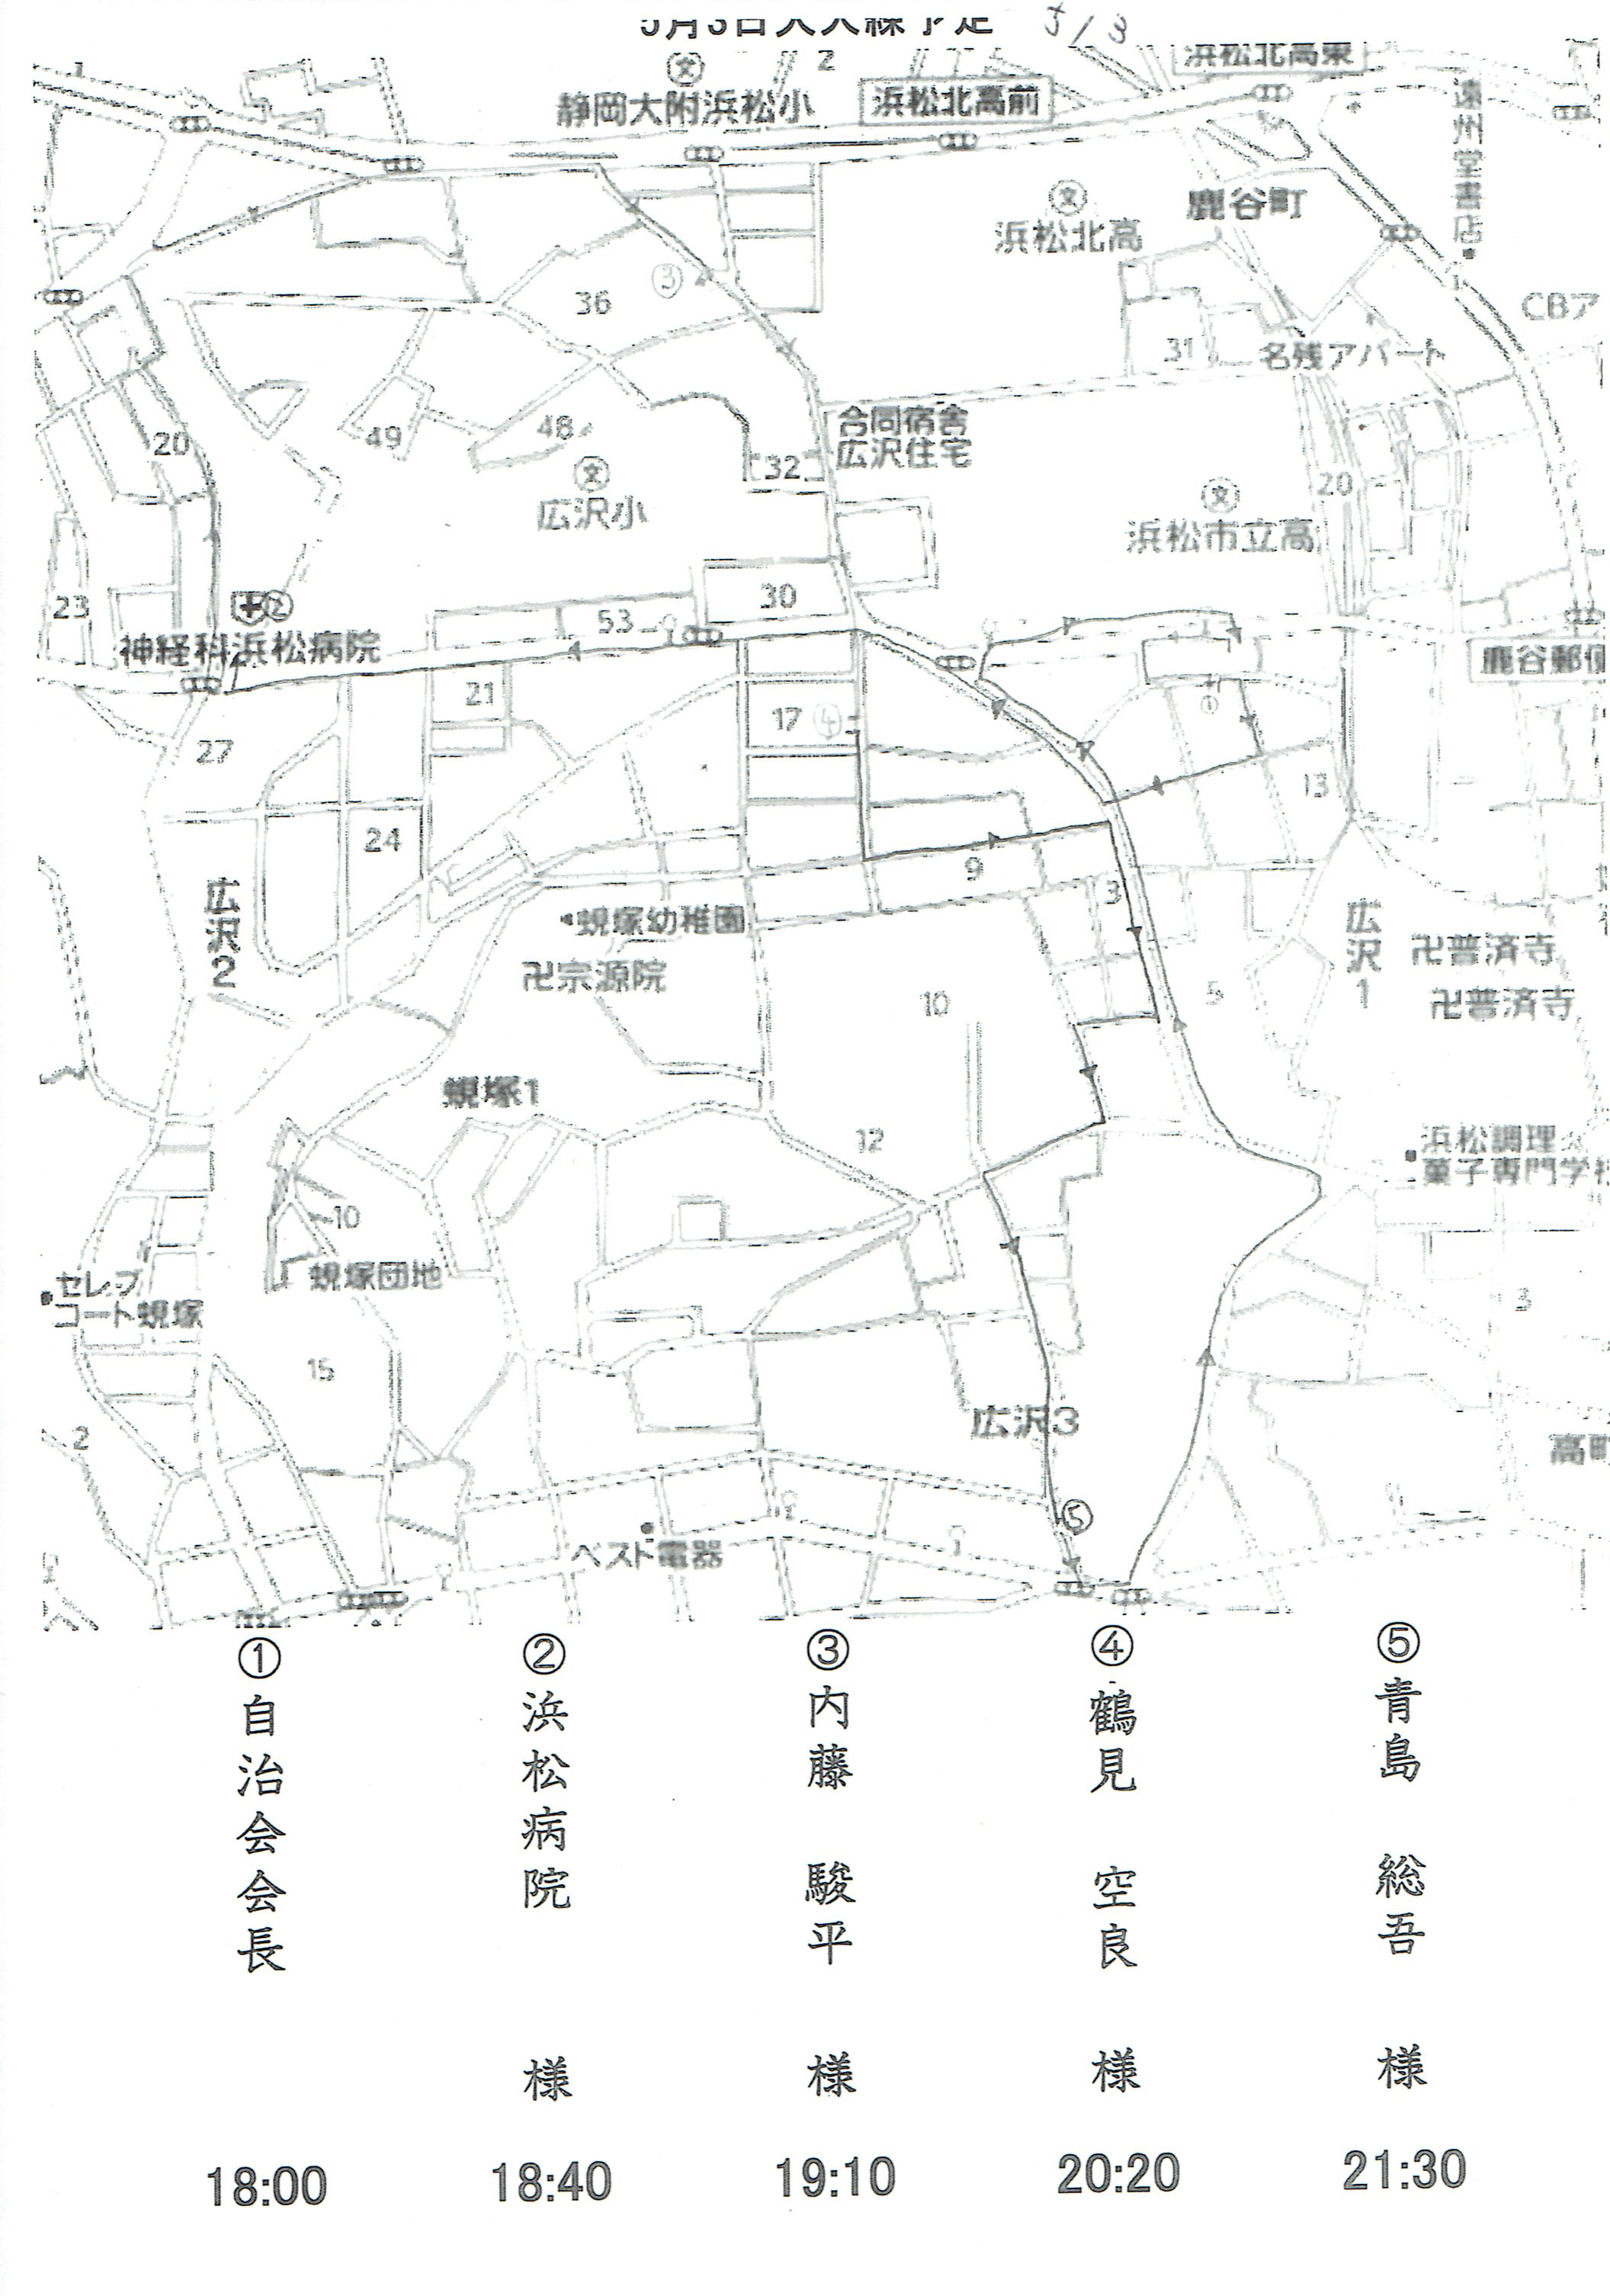 平成29年大人練り順路(地図・時間)